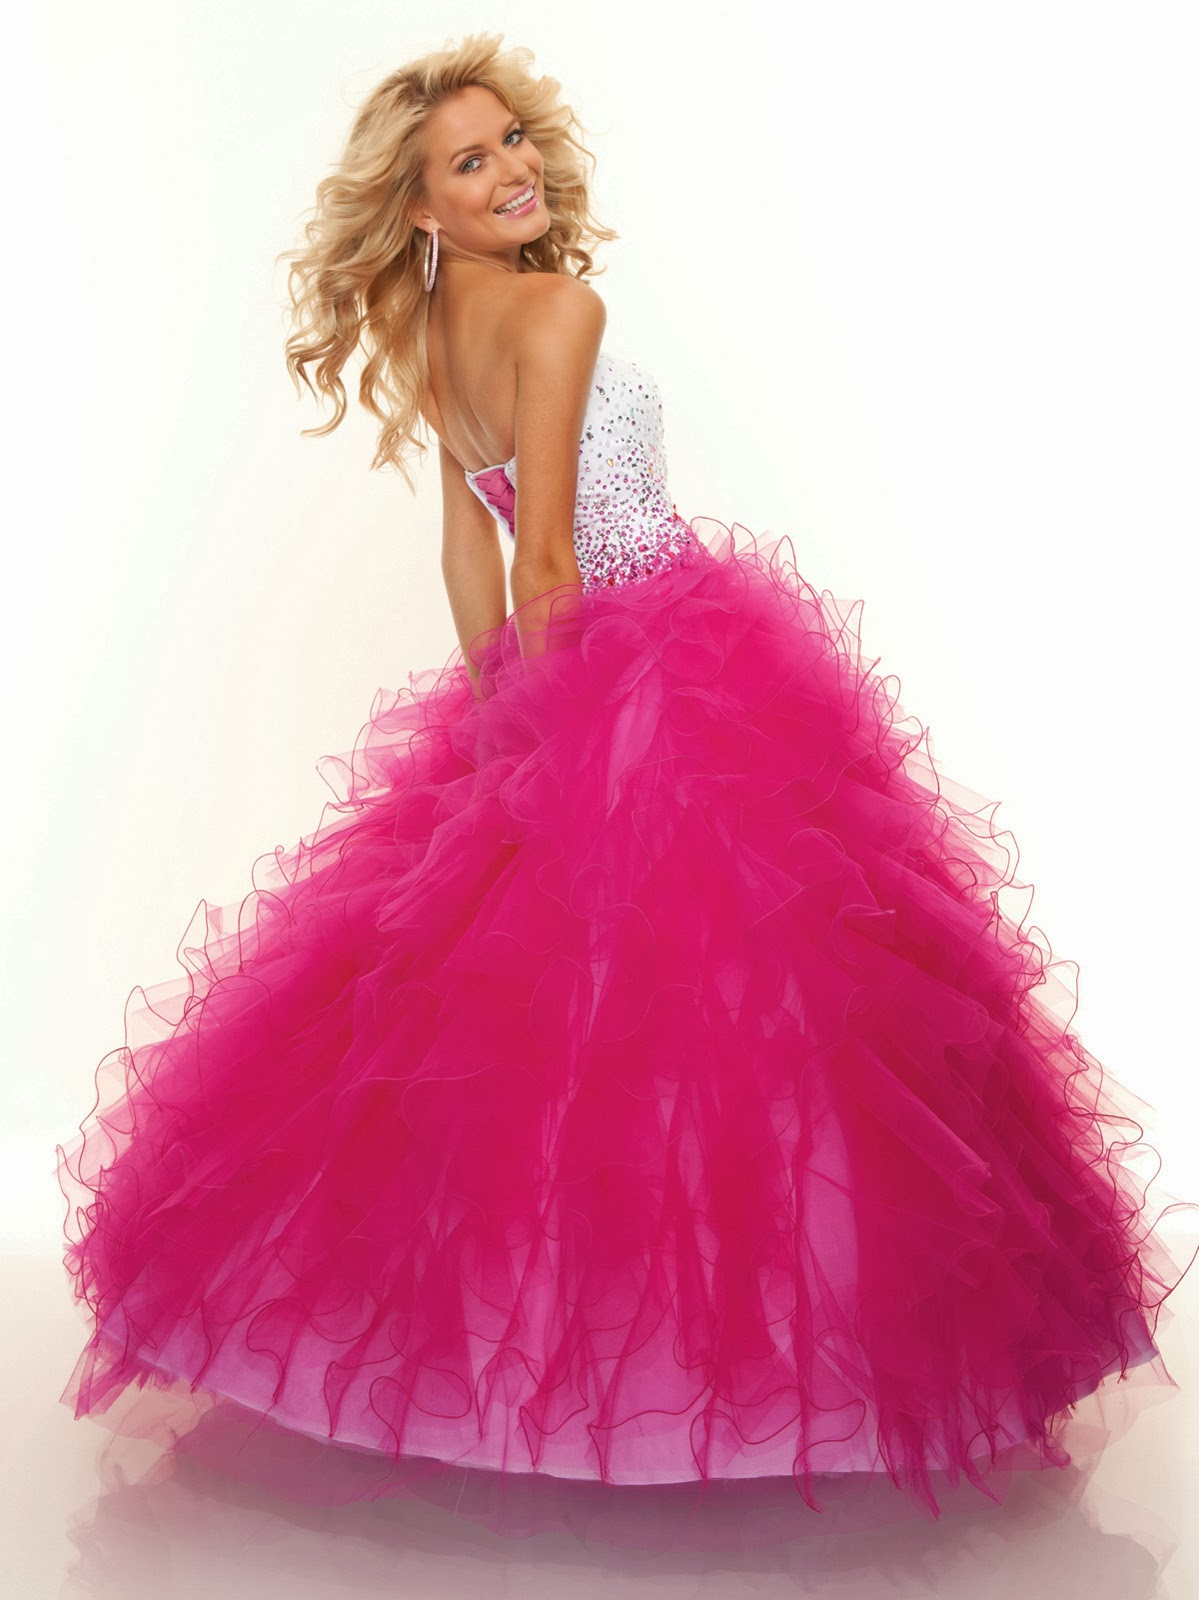 Finding a great prom dress – Beauty and the Mist